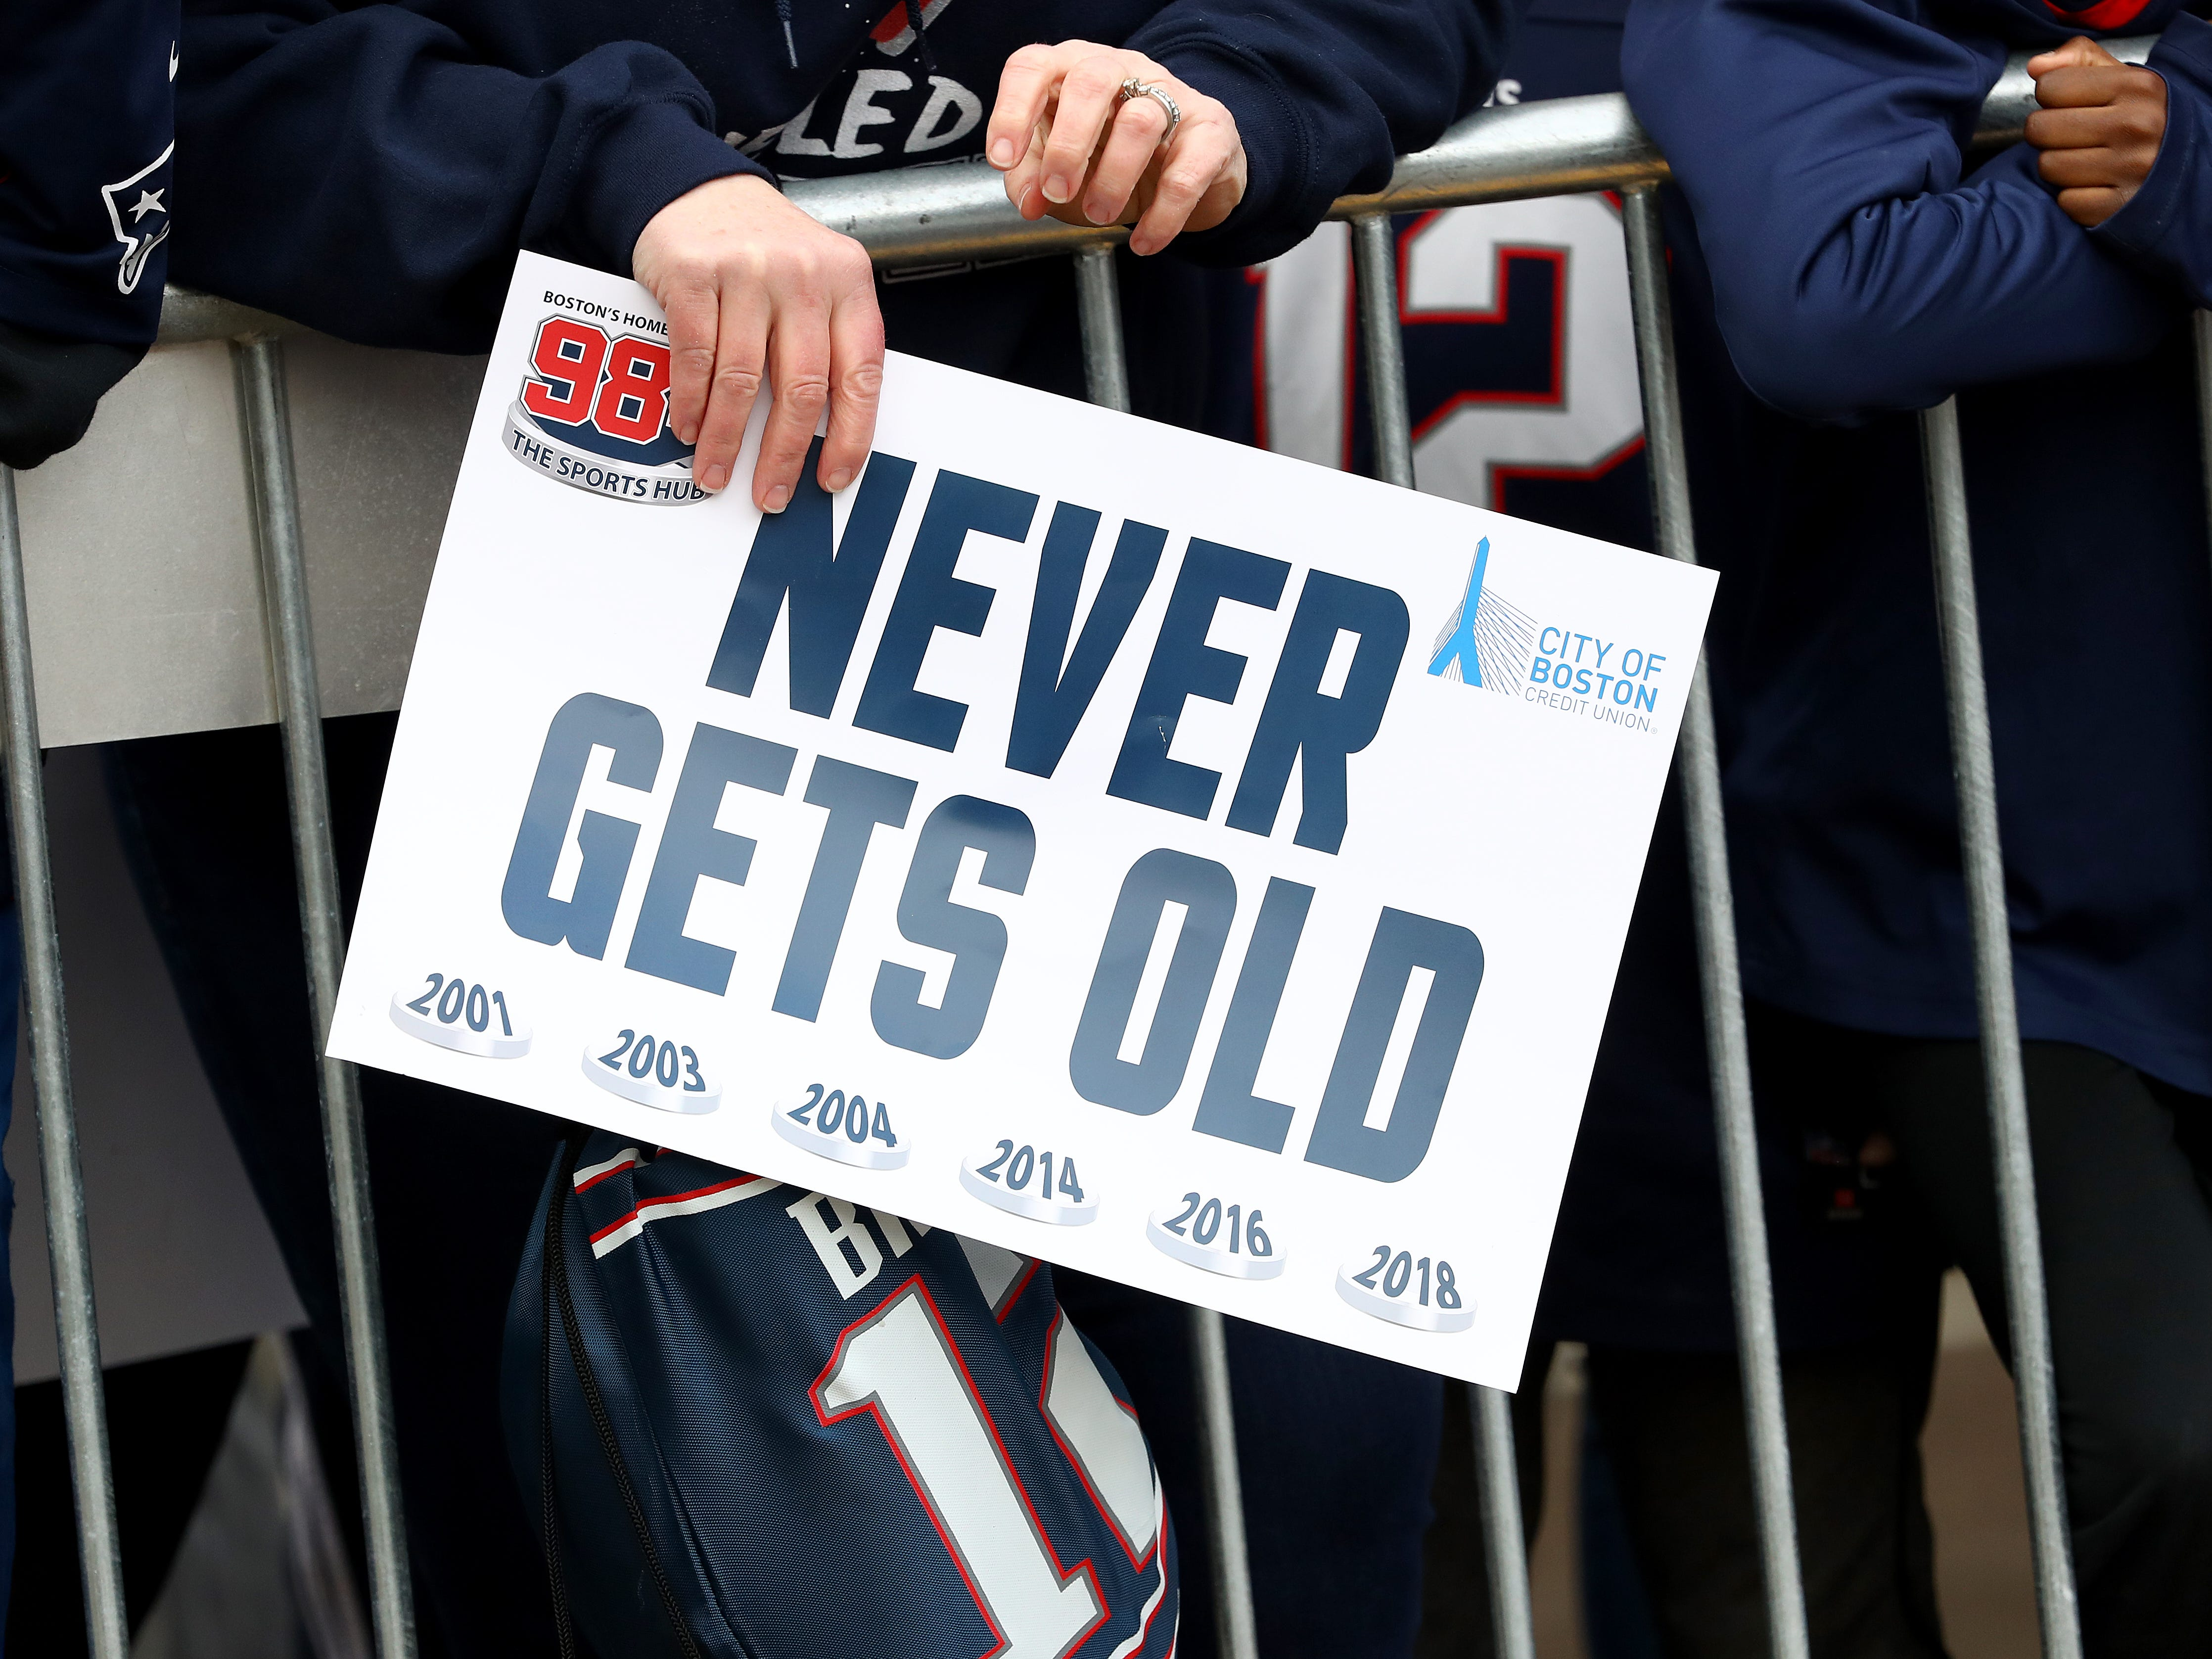 A fan holds a sign to celebrate during the New England Patriots Victory Parade on February 05, 2019 in Boston, Massachusetts. (Photo by Maddie Meyer/Getty Images)